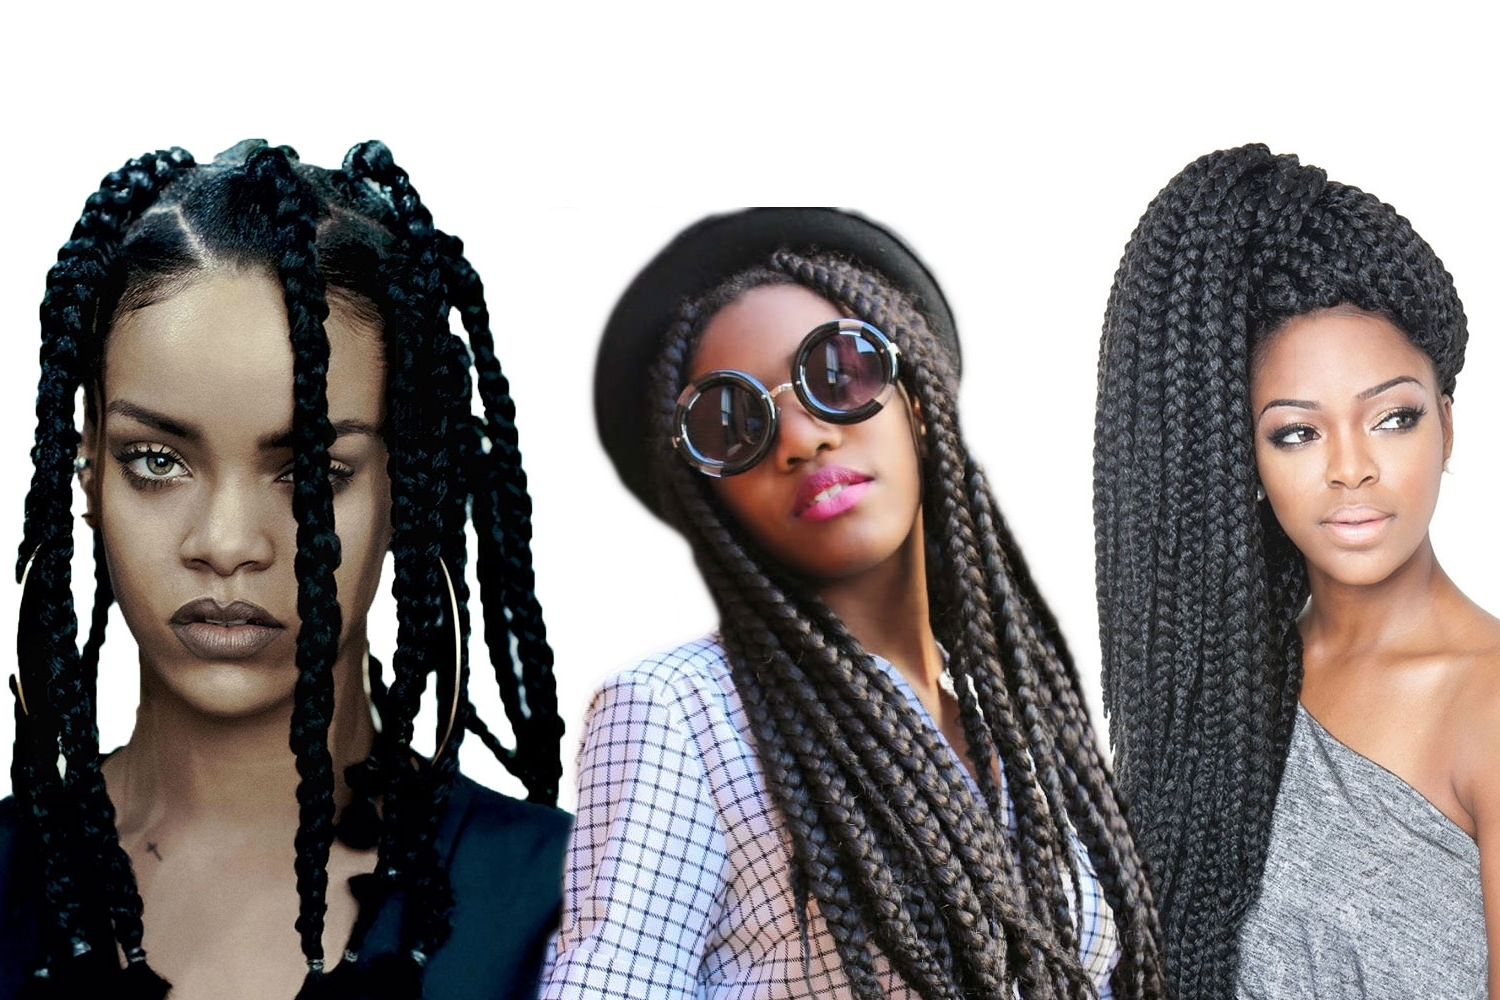 Hairstyles Within Well Known Rihanna Braided Hairstyles (View 8 of 15)